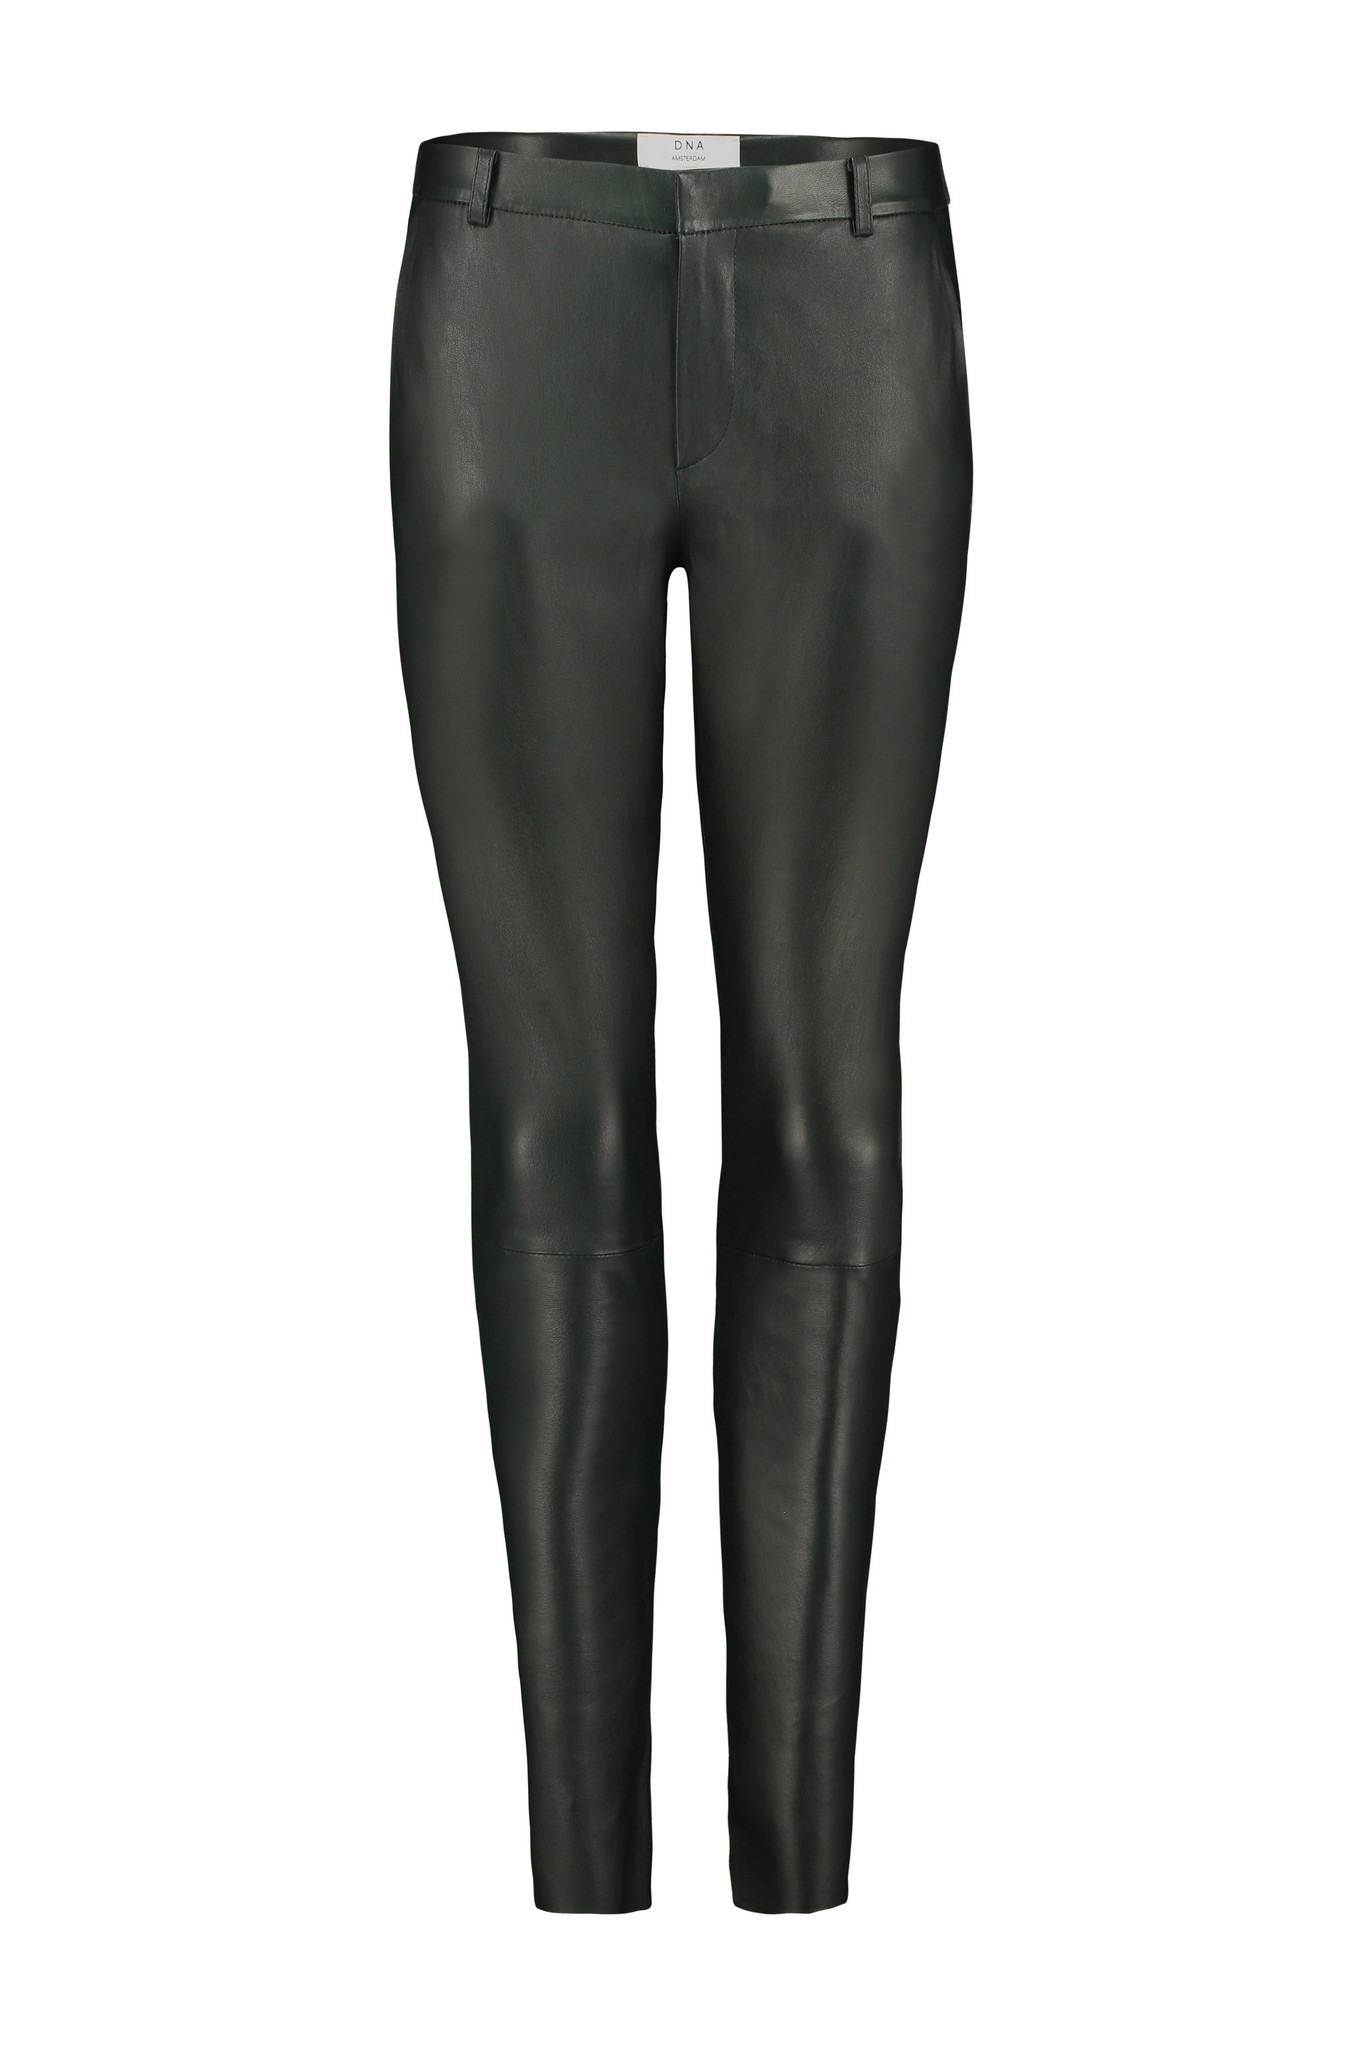 Gale Leather Pants - Deep Green-1